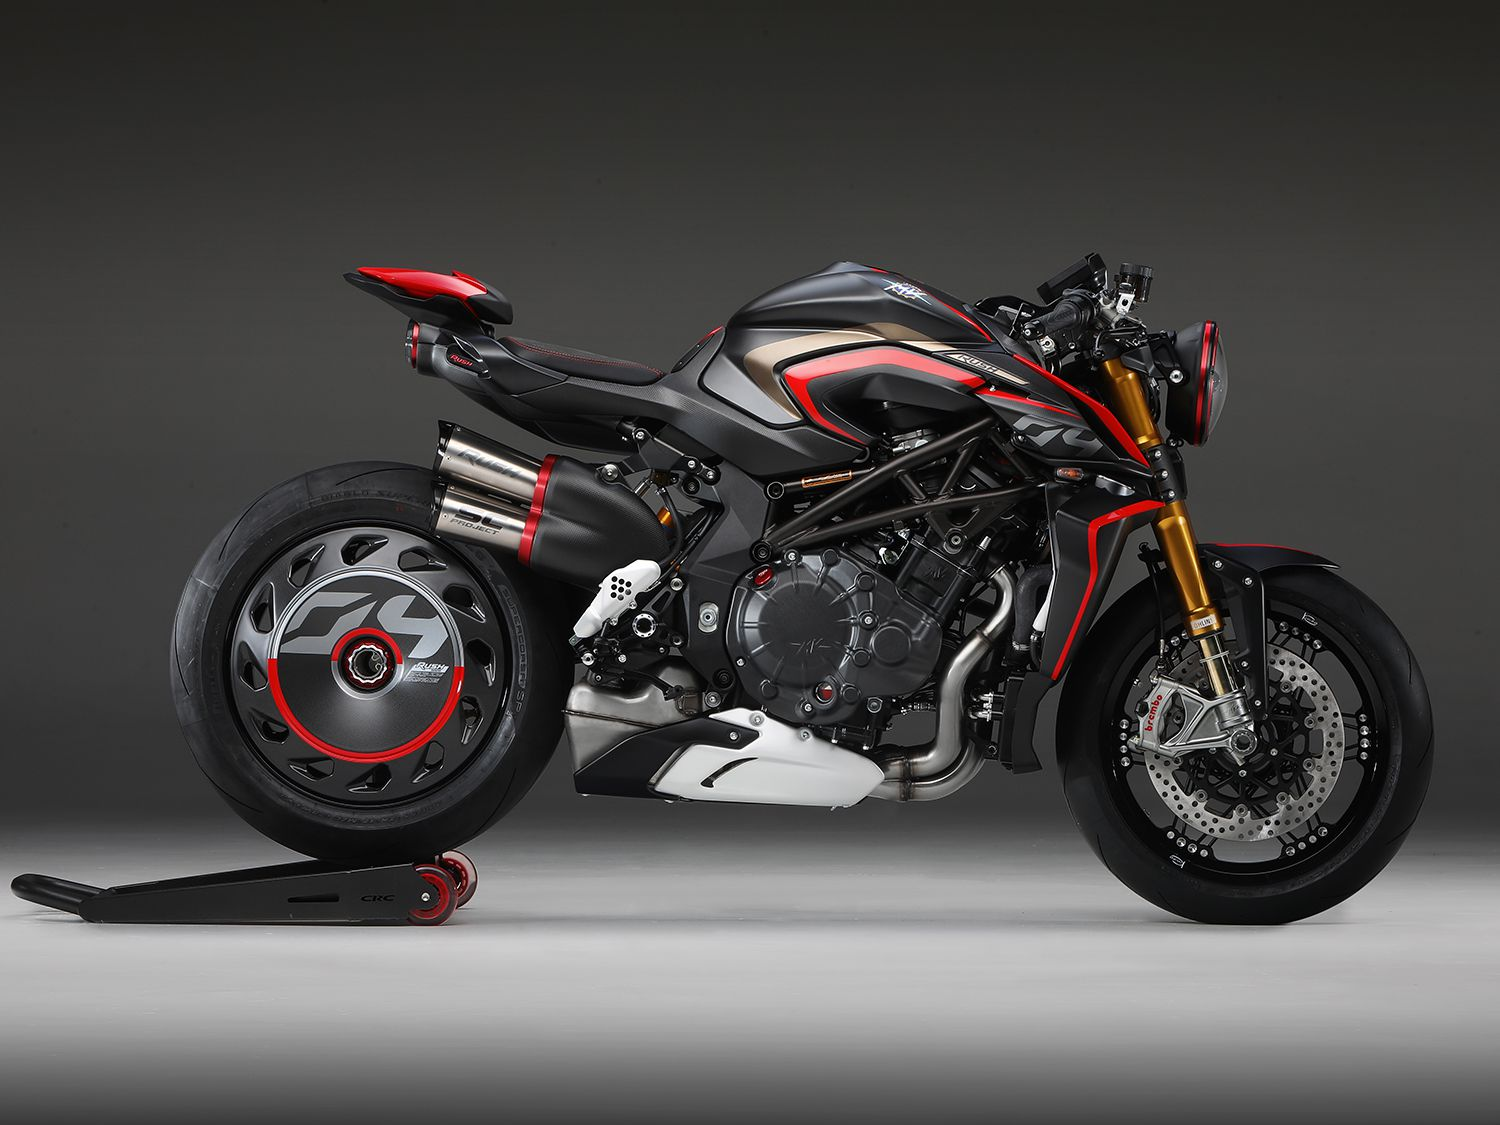 <h2>2020 MV Agusta Rush 1000</h2> </br> Production of the 2020 Rush 1000 is slated to begin in the next couple of months. This is apparently the only production bike utilizing radial valves and titanium connecting rods to assist in producing 208 hp in standard road form.